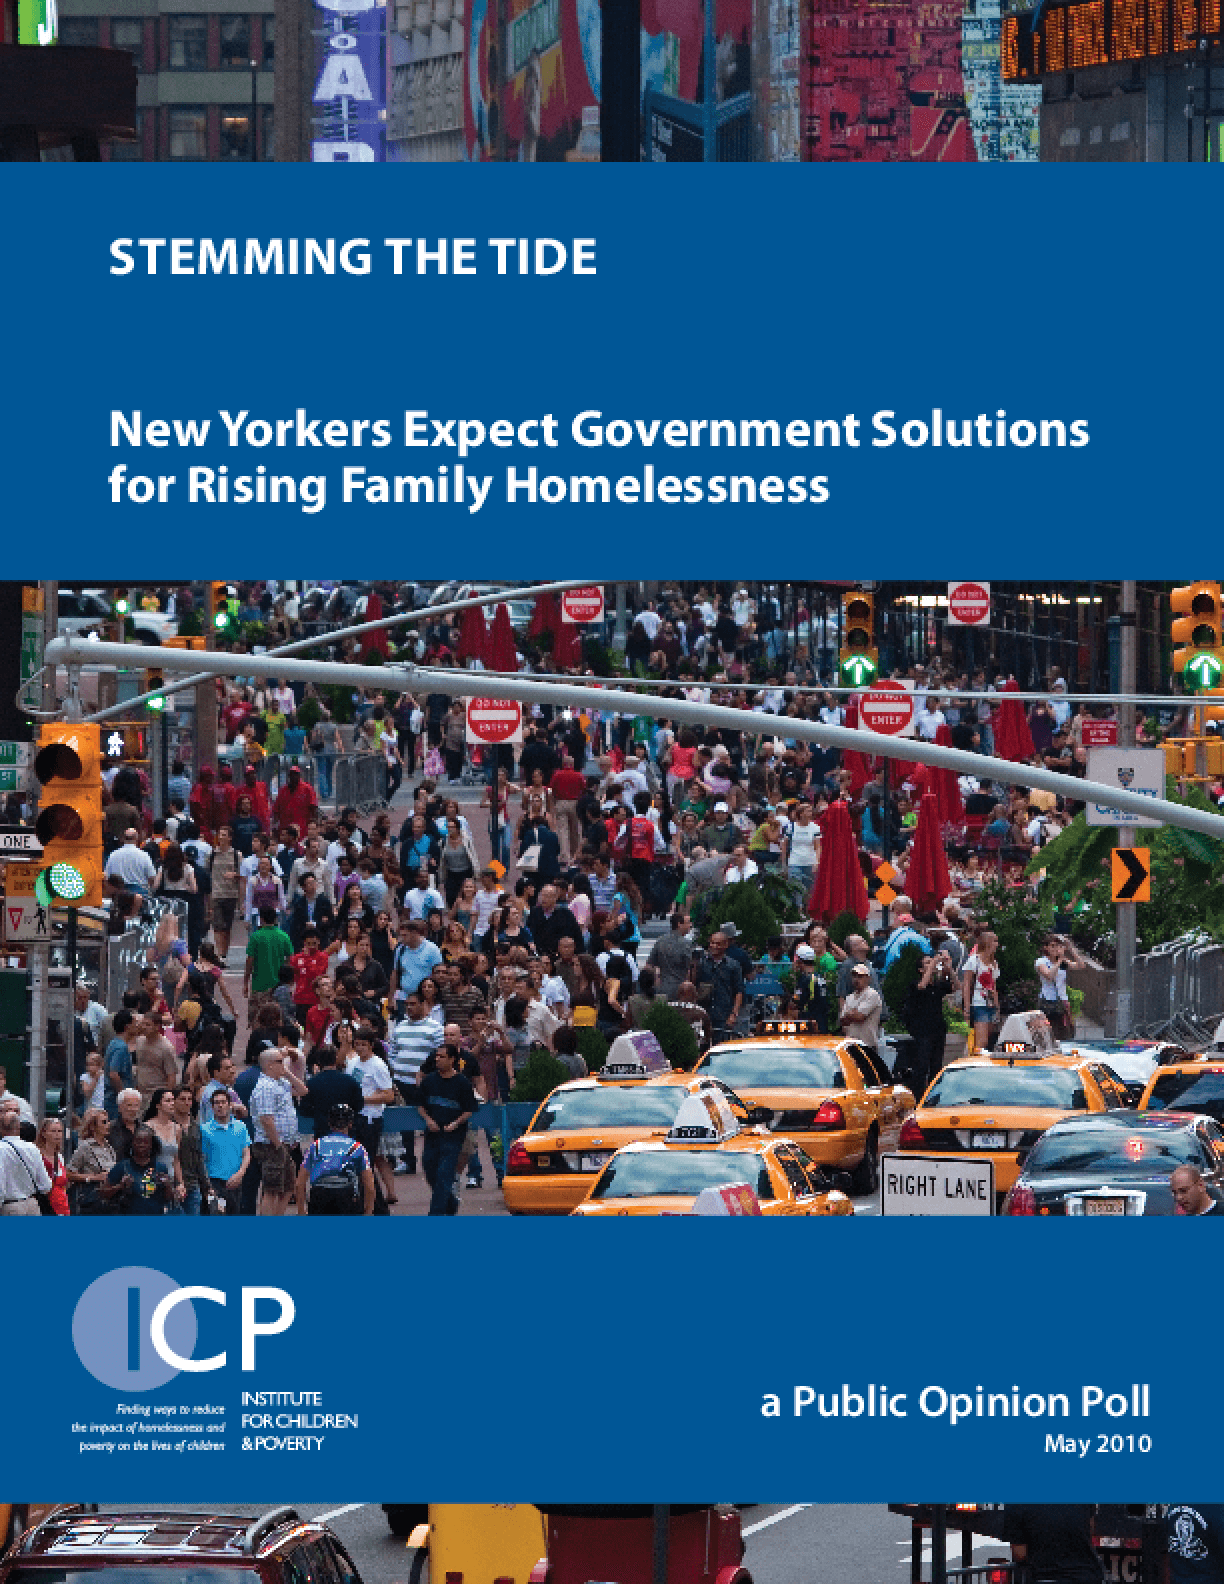 Stemming the Tide: New Yorkers Expect Government Solutions for Rising Homelessness